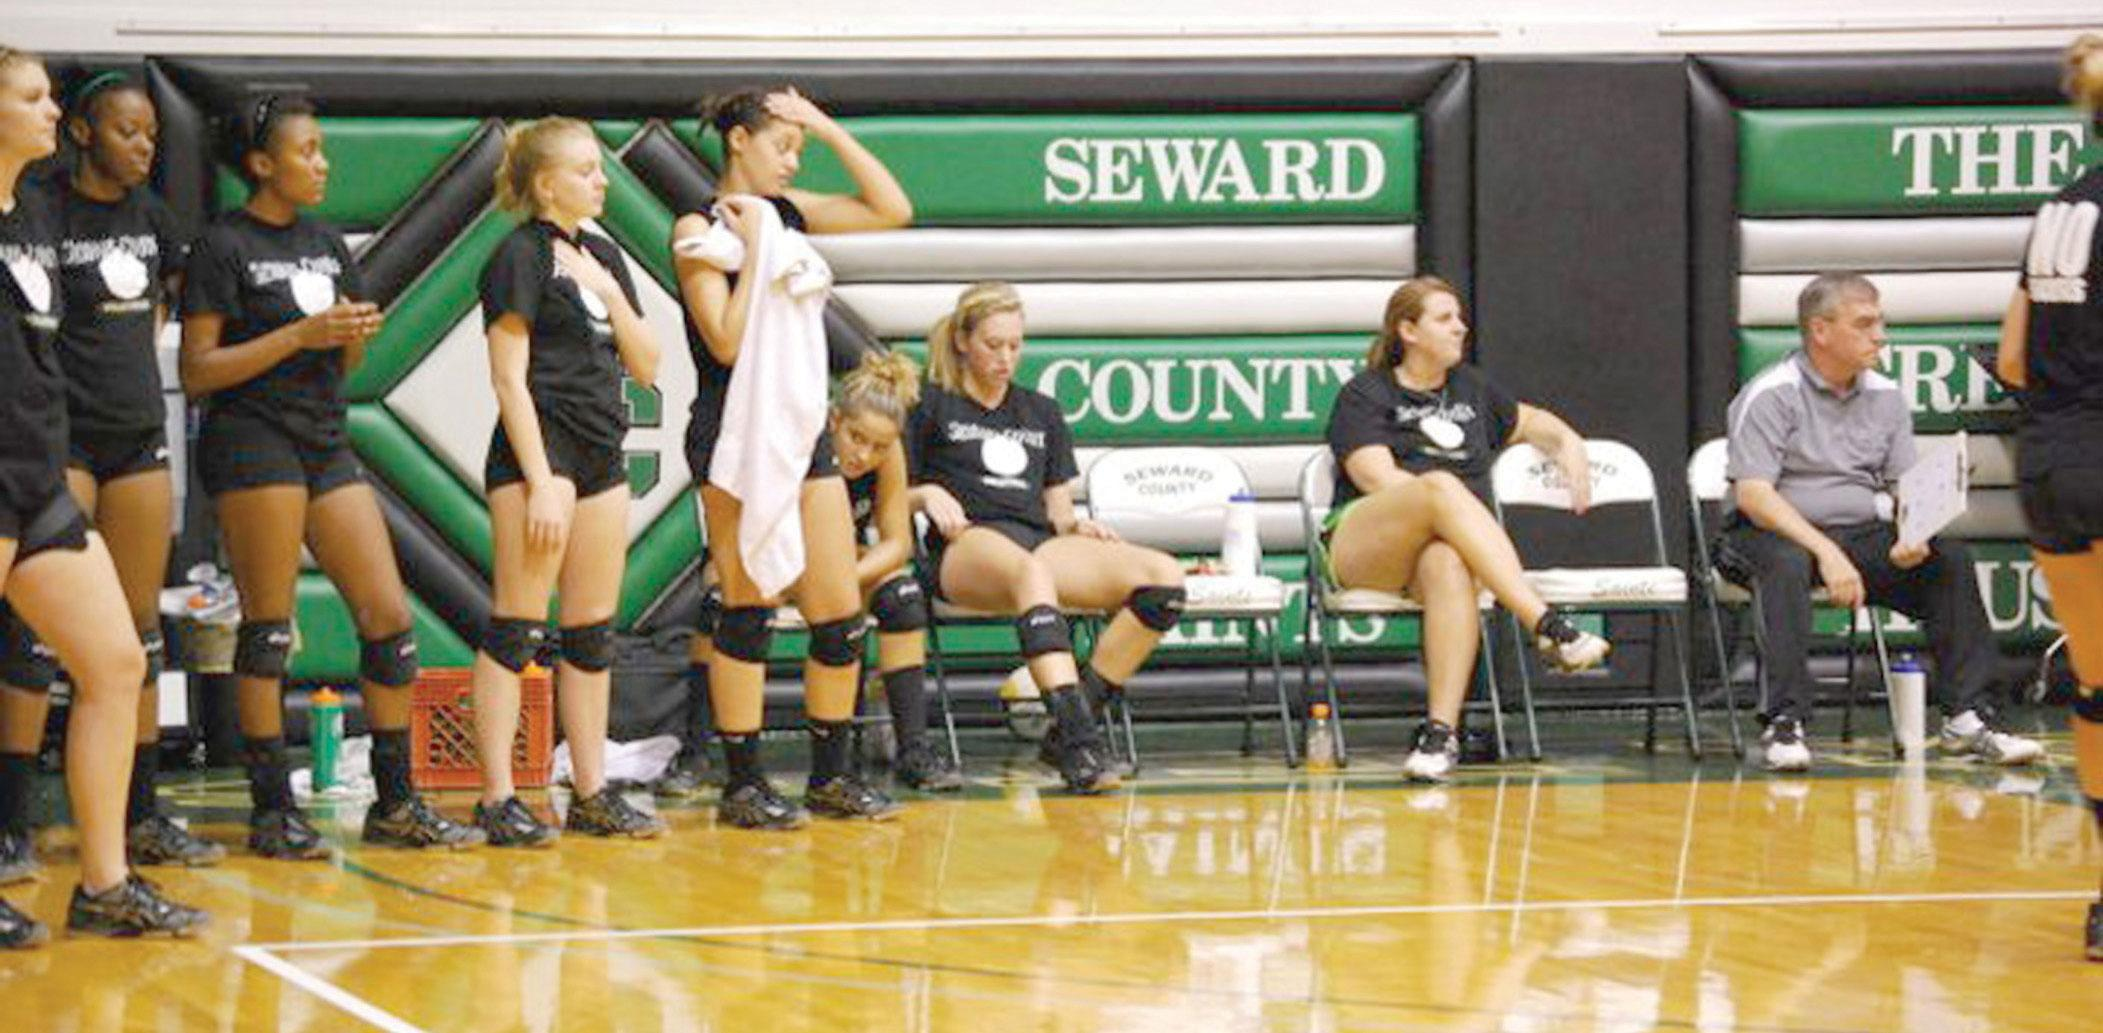 Talk about a heated practice... Lady Saints endure hot times in Green House